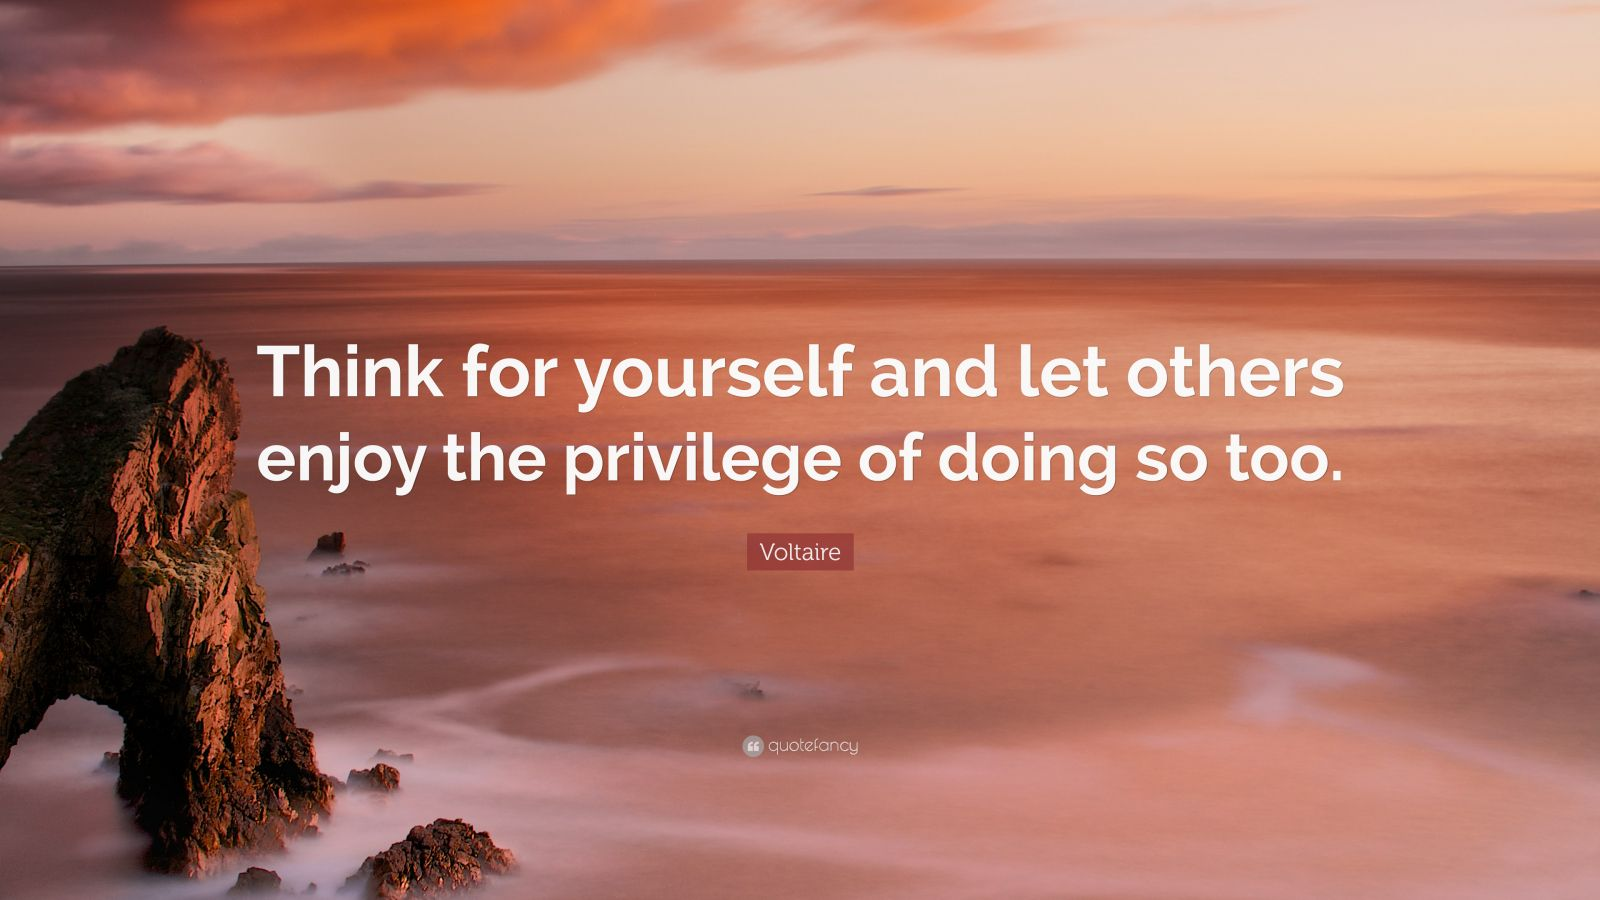 Zen Quote Wallpaper Voltaire Quote Think For Yourself And Let Others Enjoy